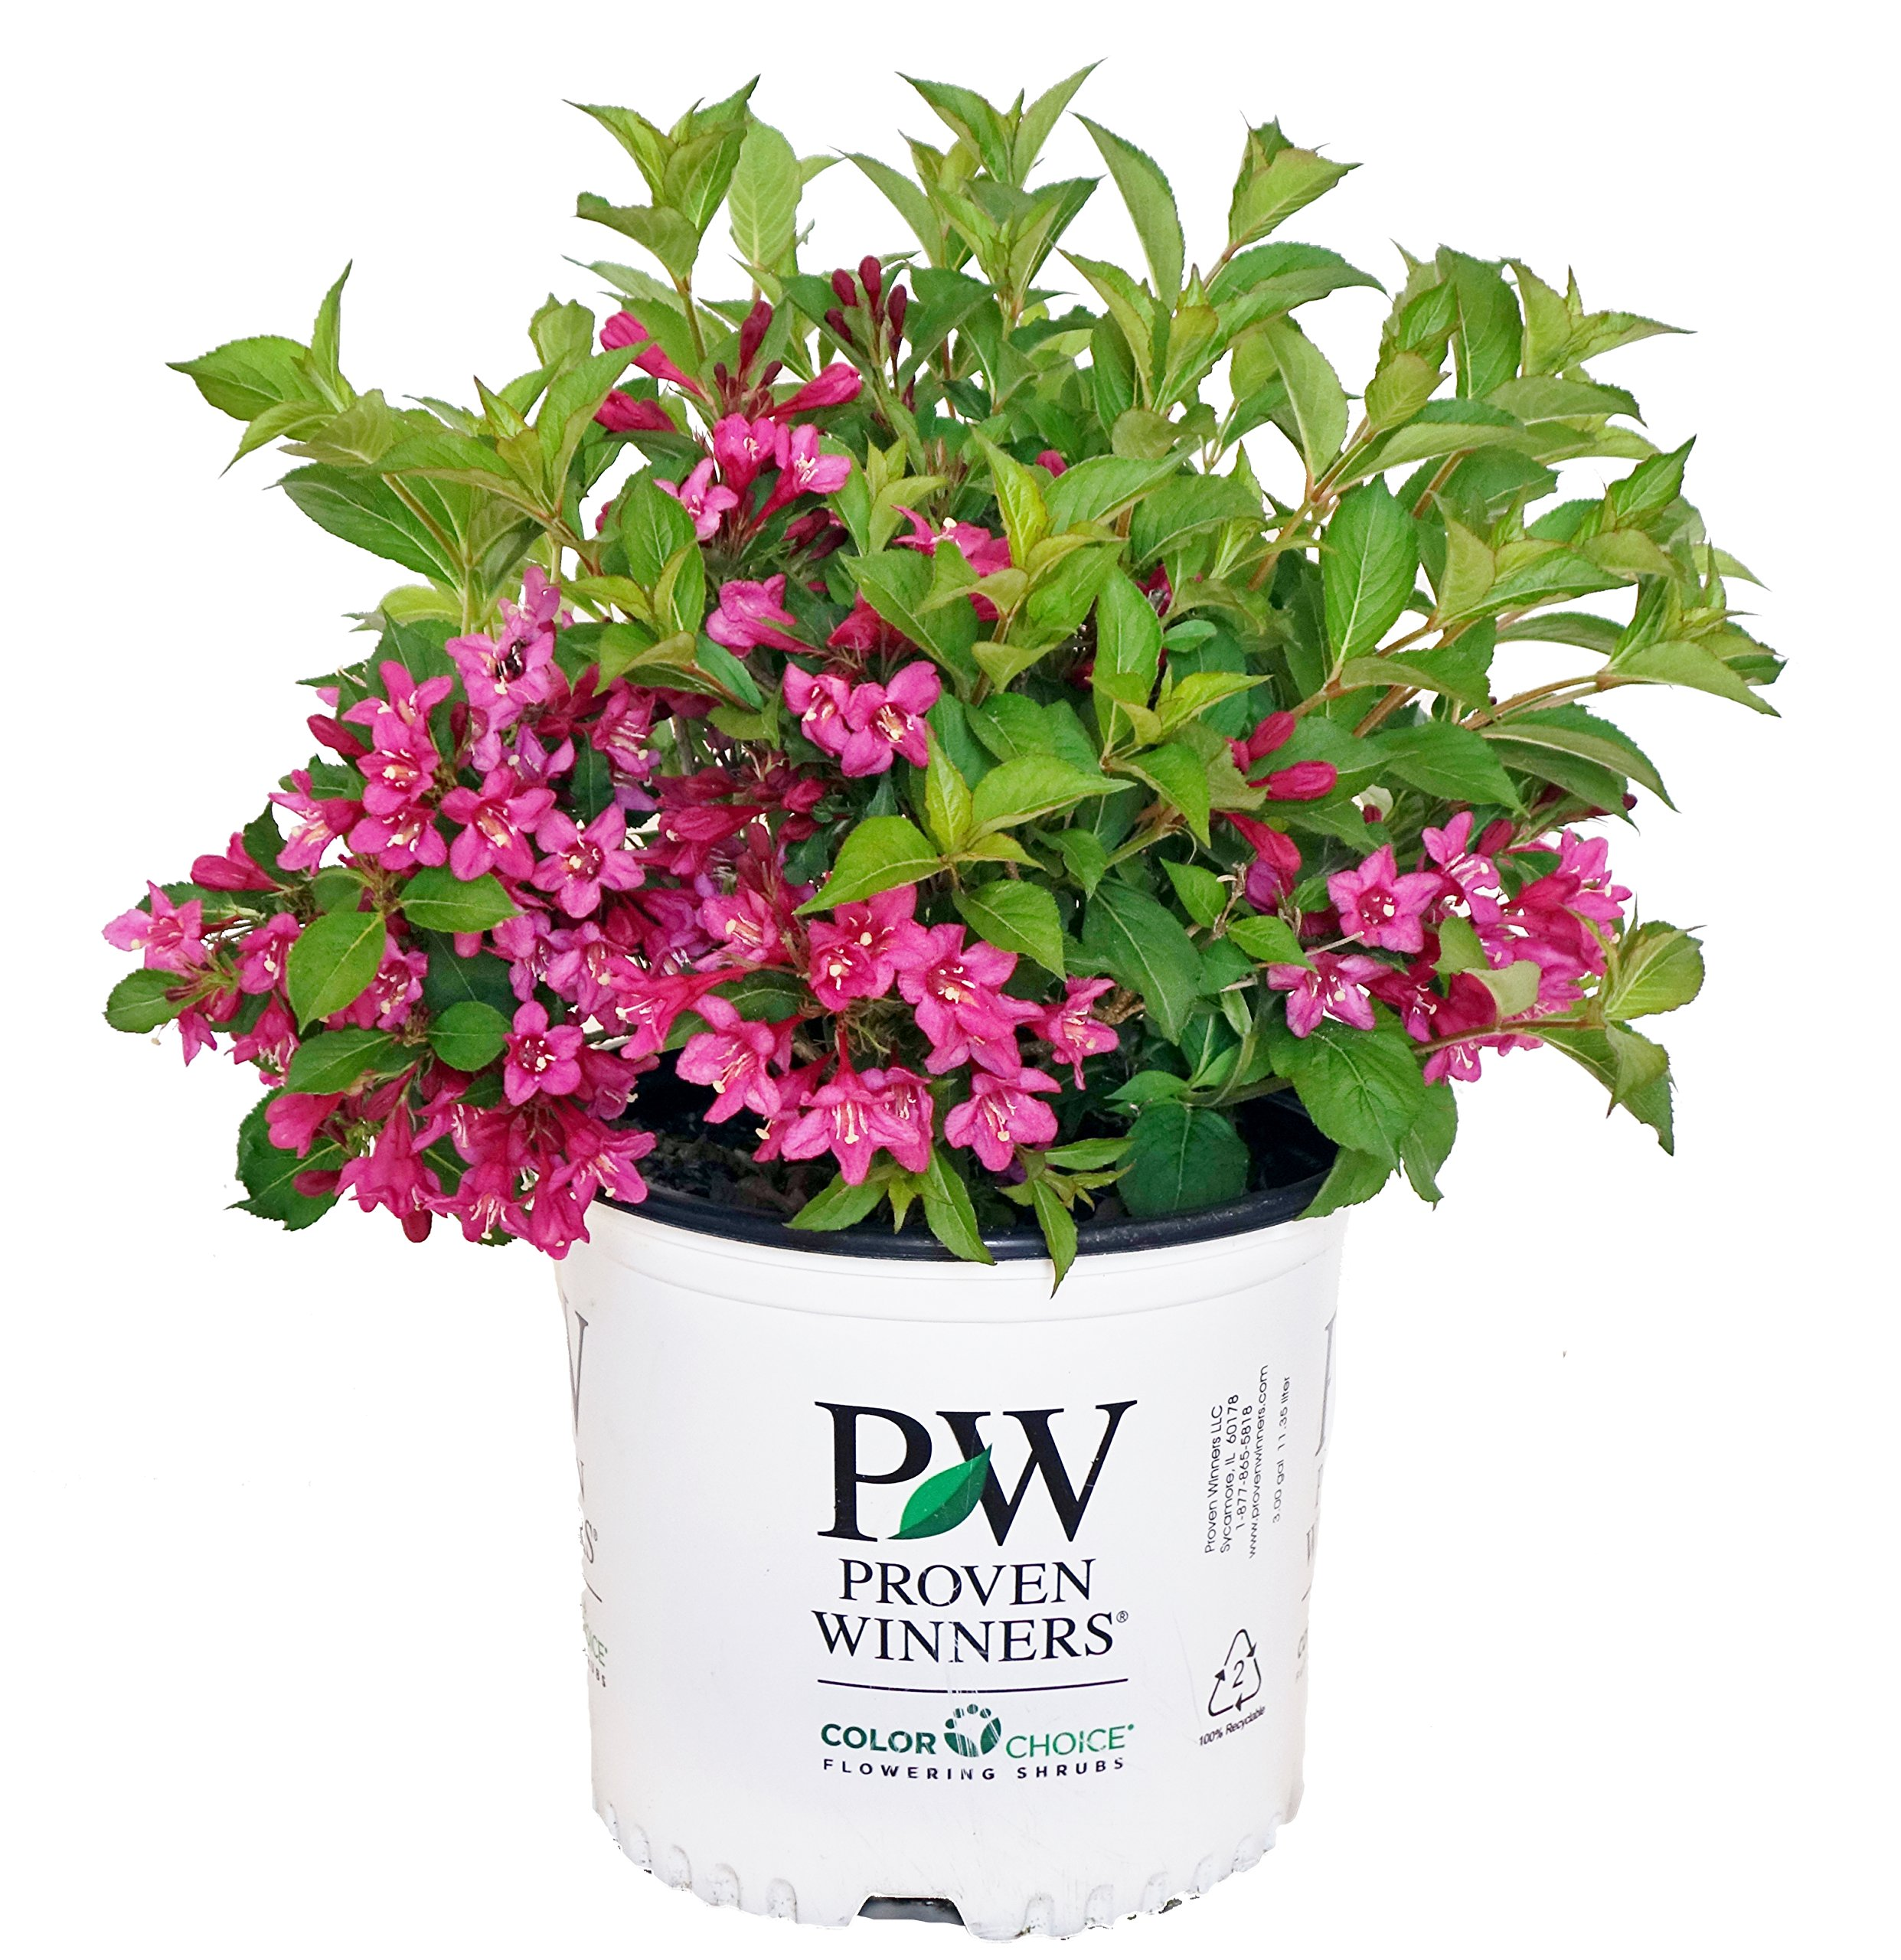 Proven Winners - Weigela Flordia Sonic Bloom Pink (Reblooming Weigela) Shrub, Pink Flowers, #3 - Size Container by Green Promise Farms